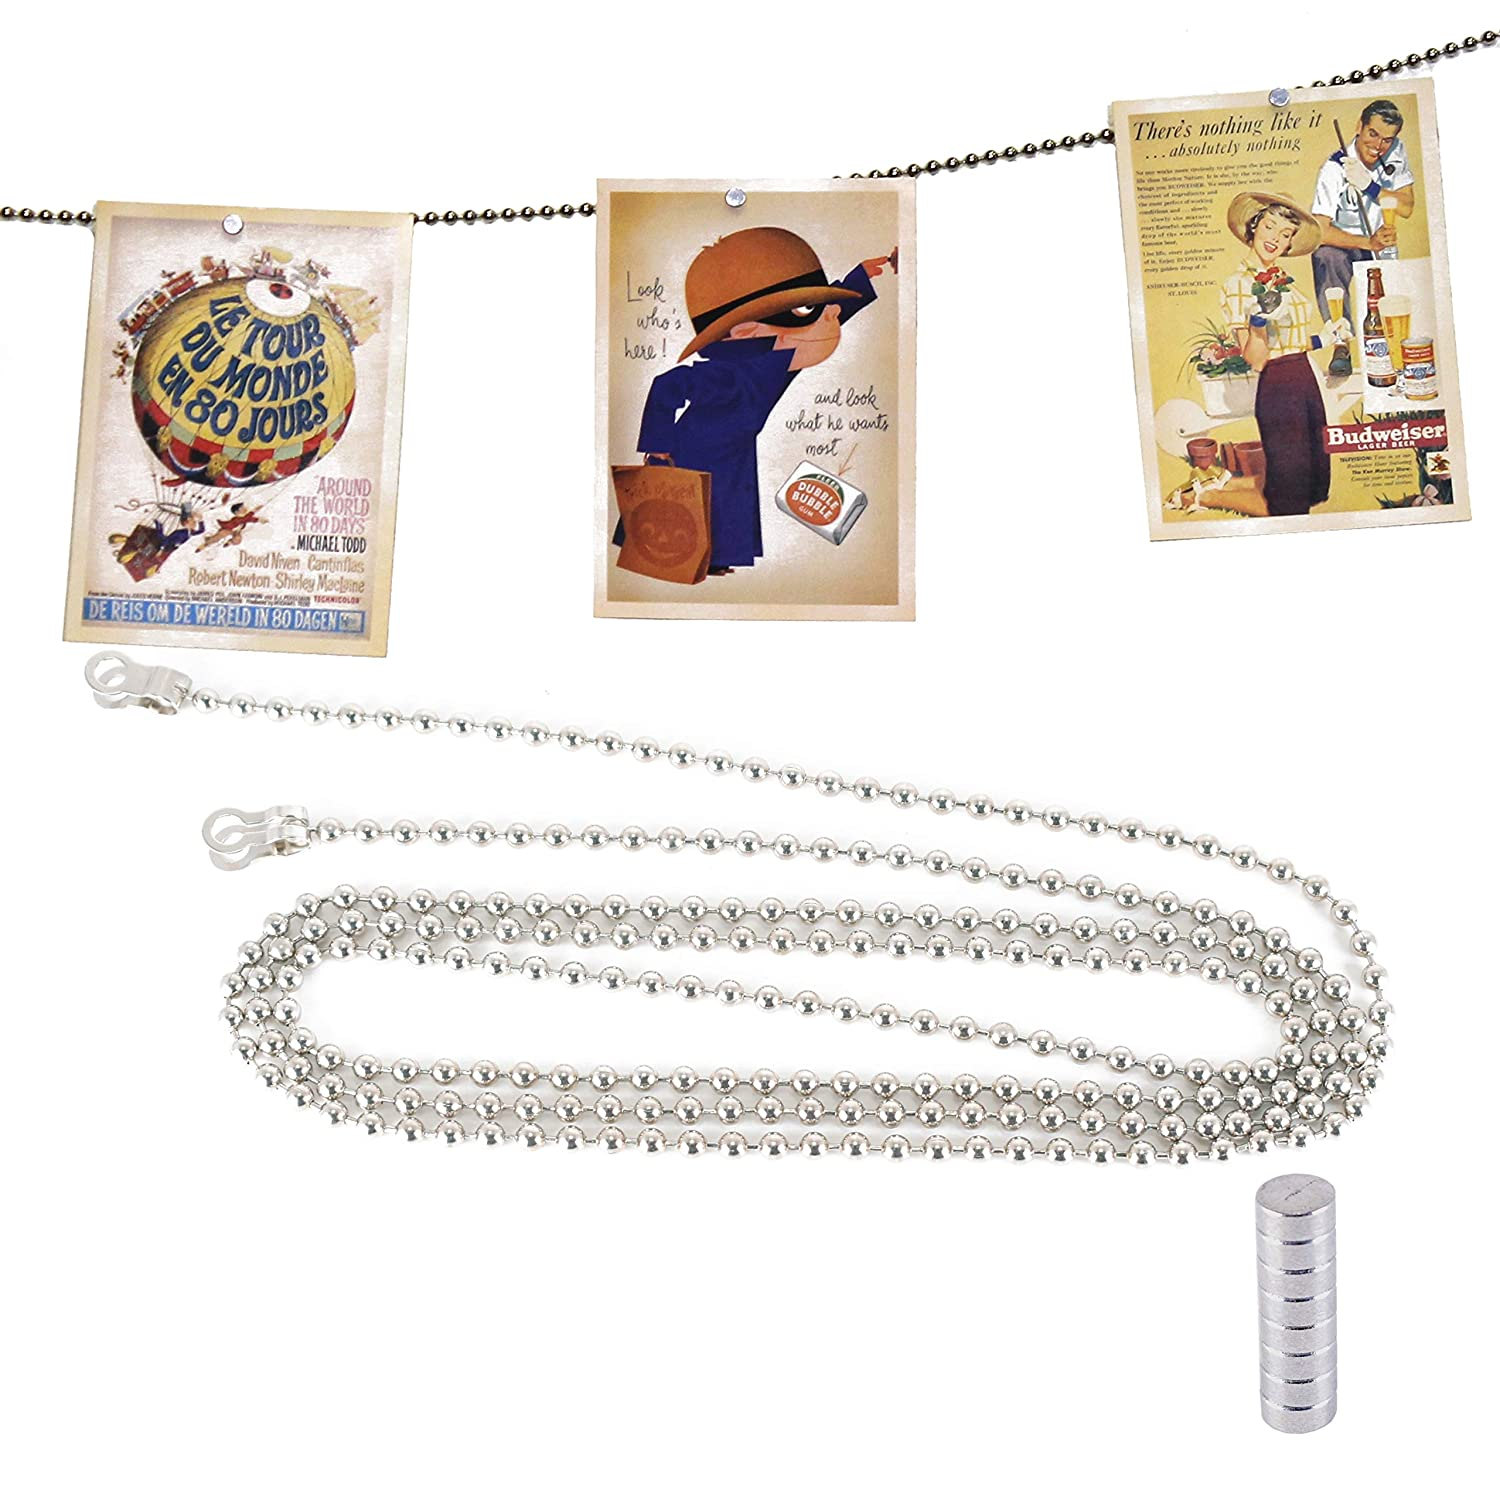 Magnetic Card Holder Display DoLessMore 5 FT Ball Chain Photo Frame with 8 Strong Magnets